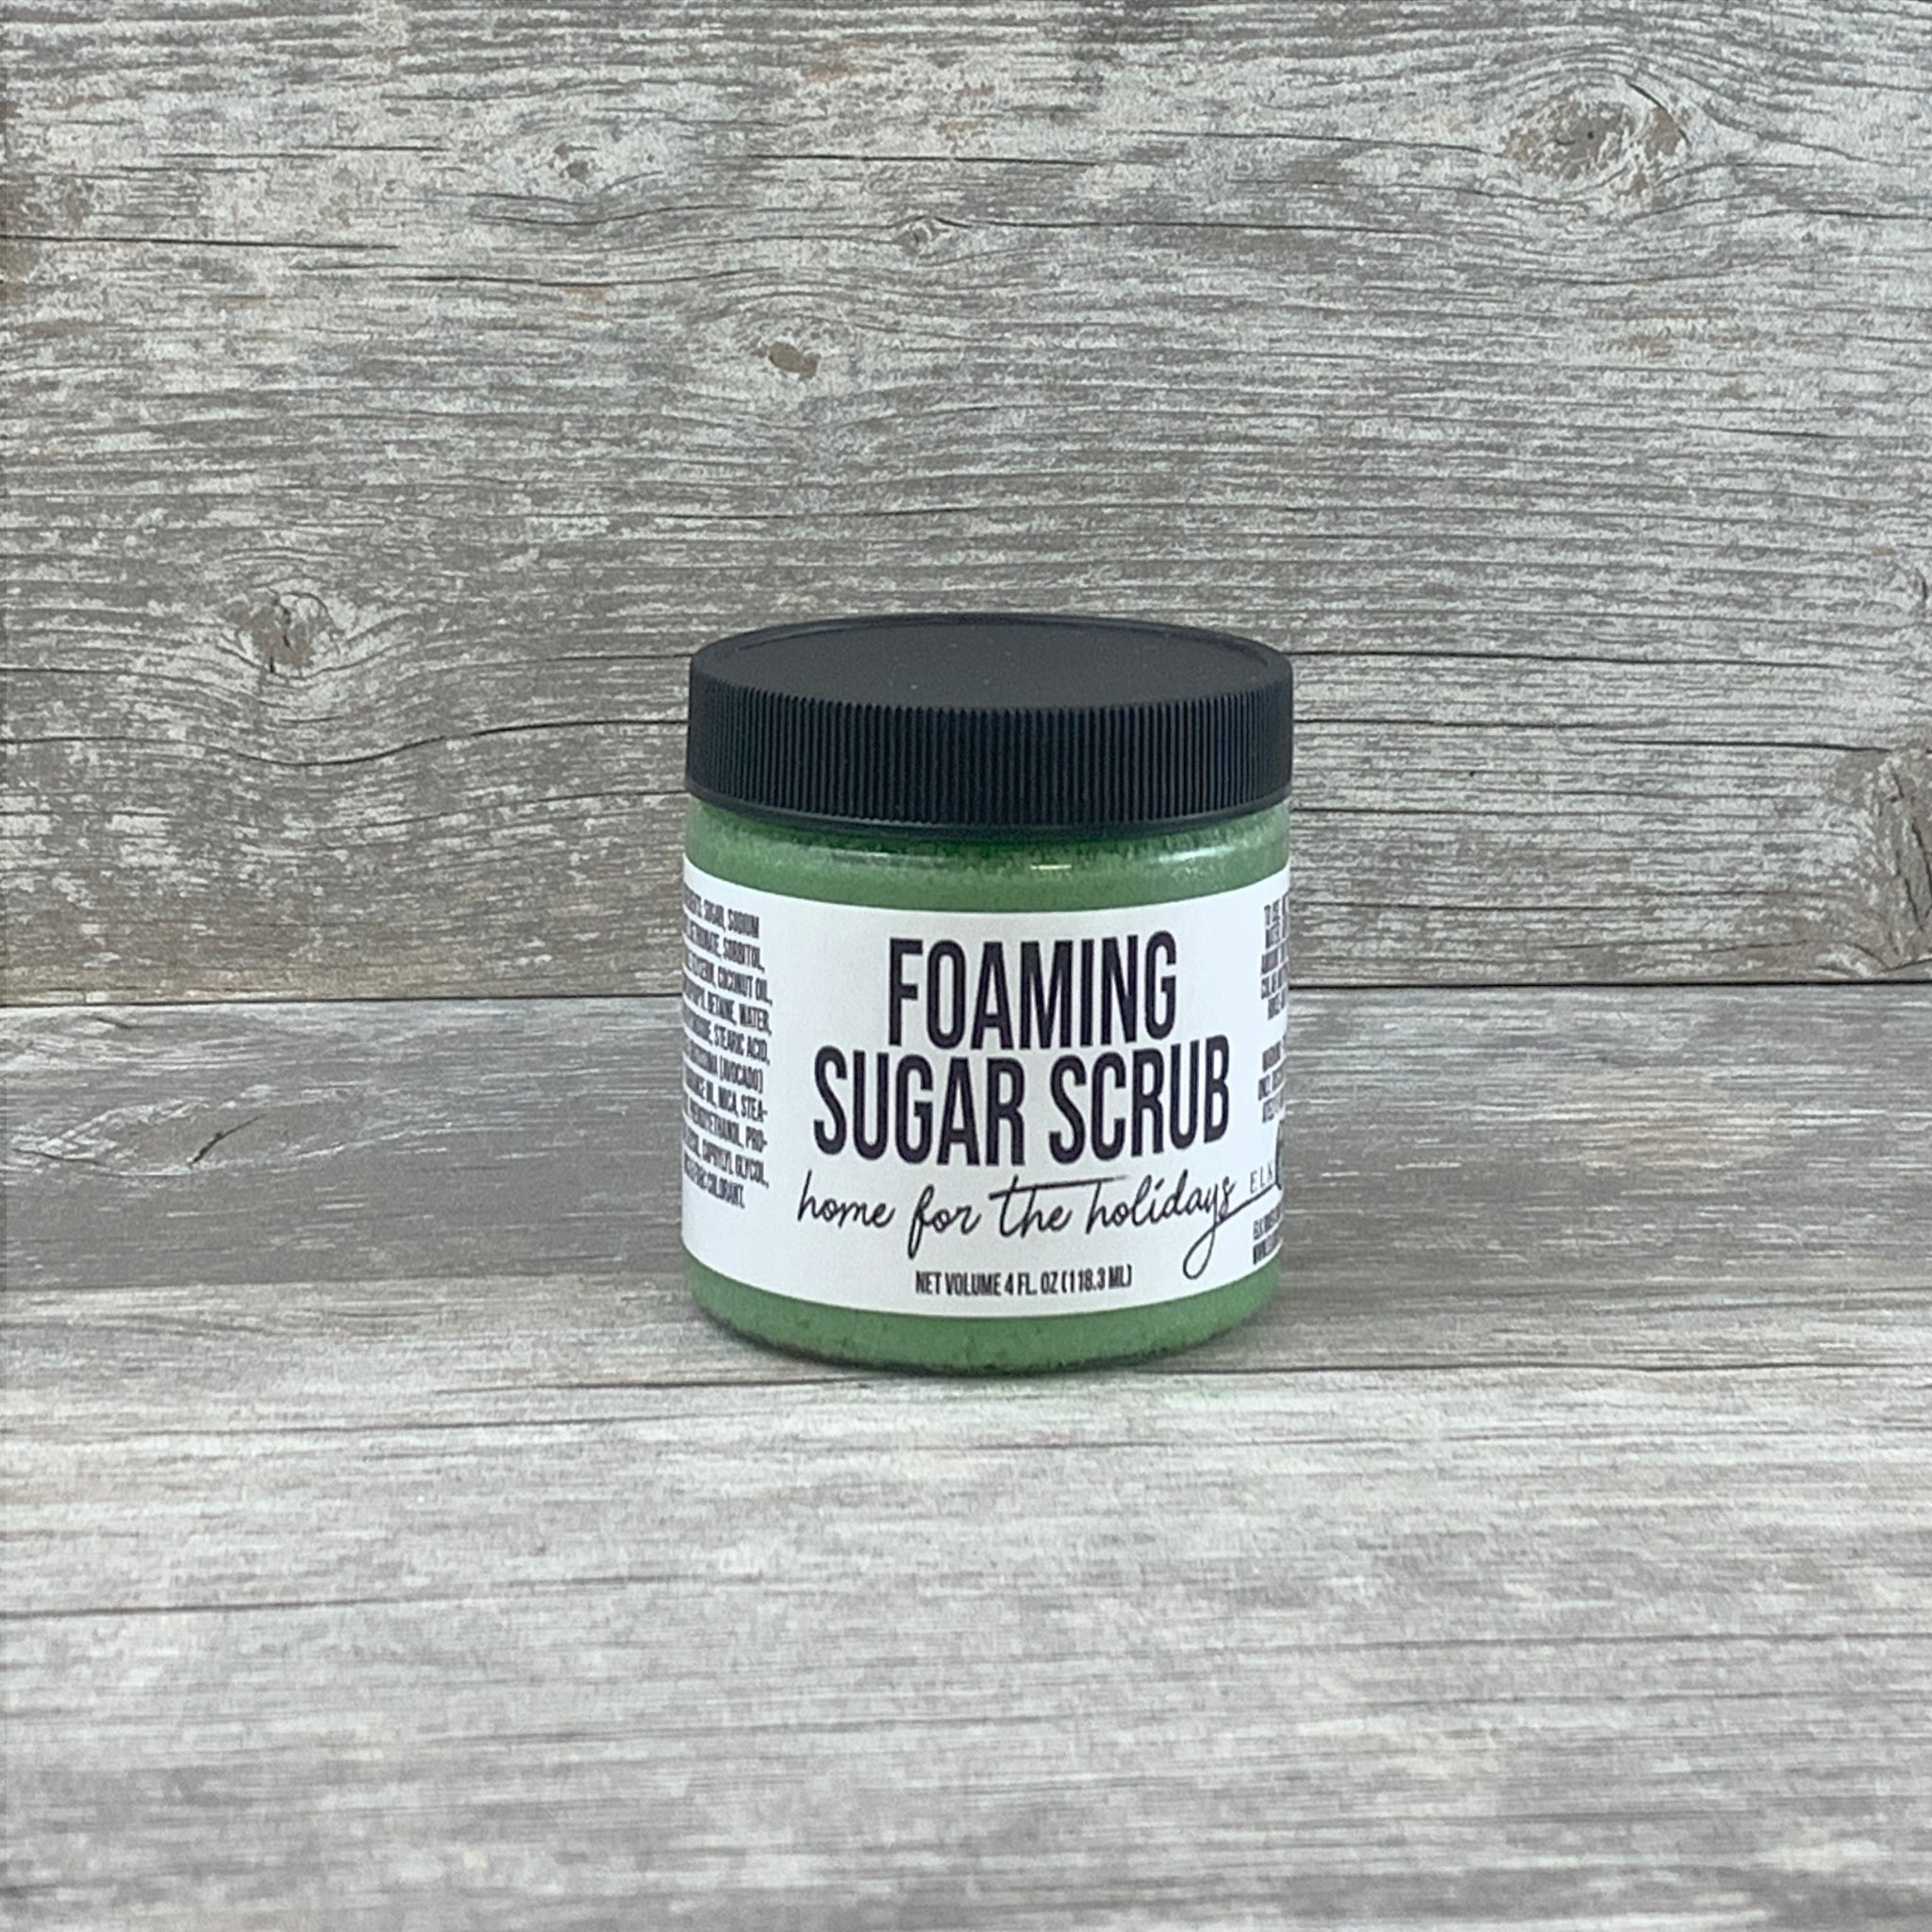 Home For The Holidays Foaming Sugar Scrub